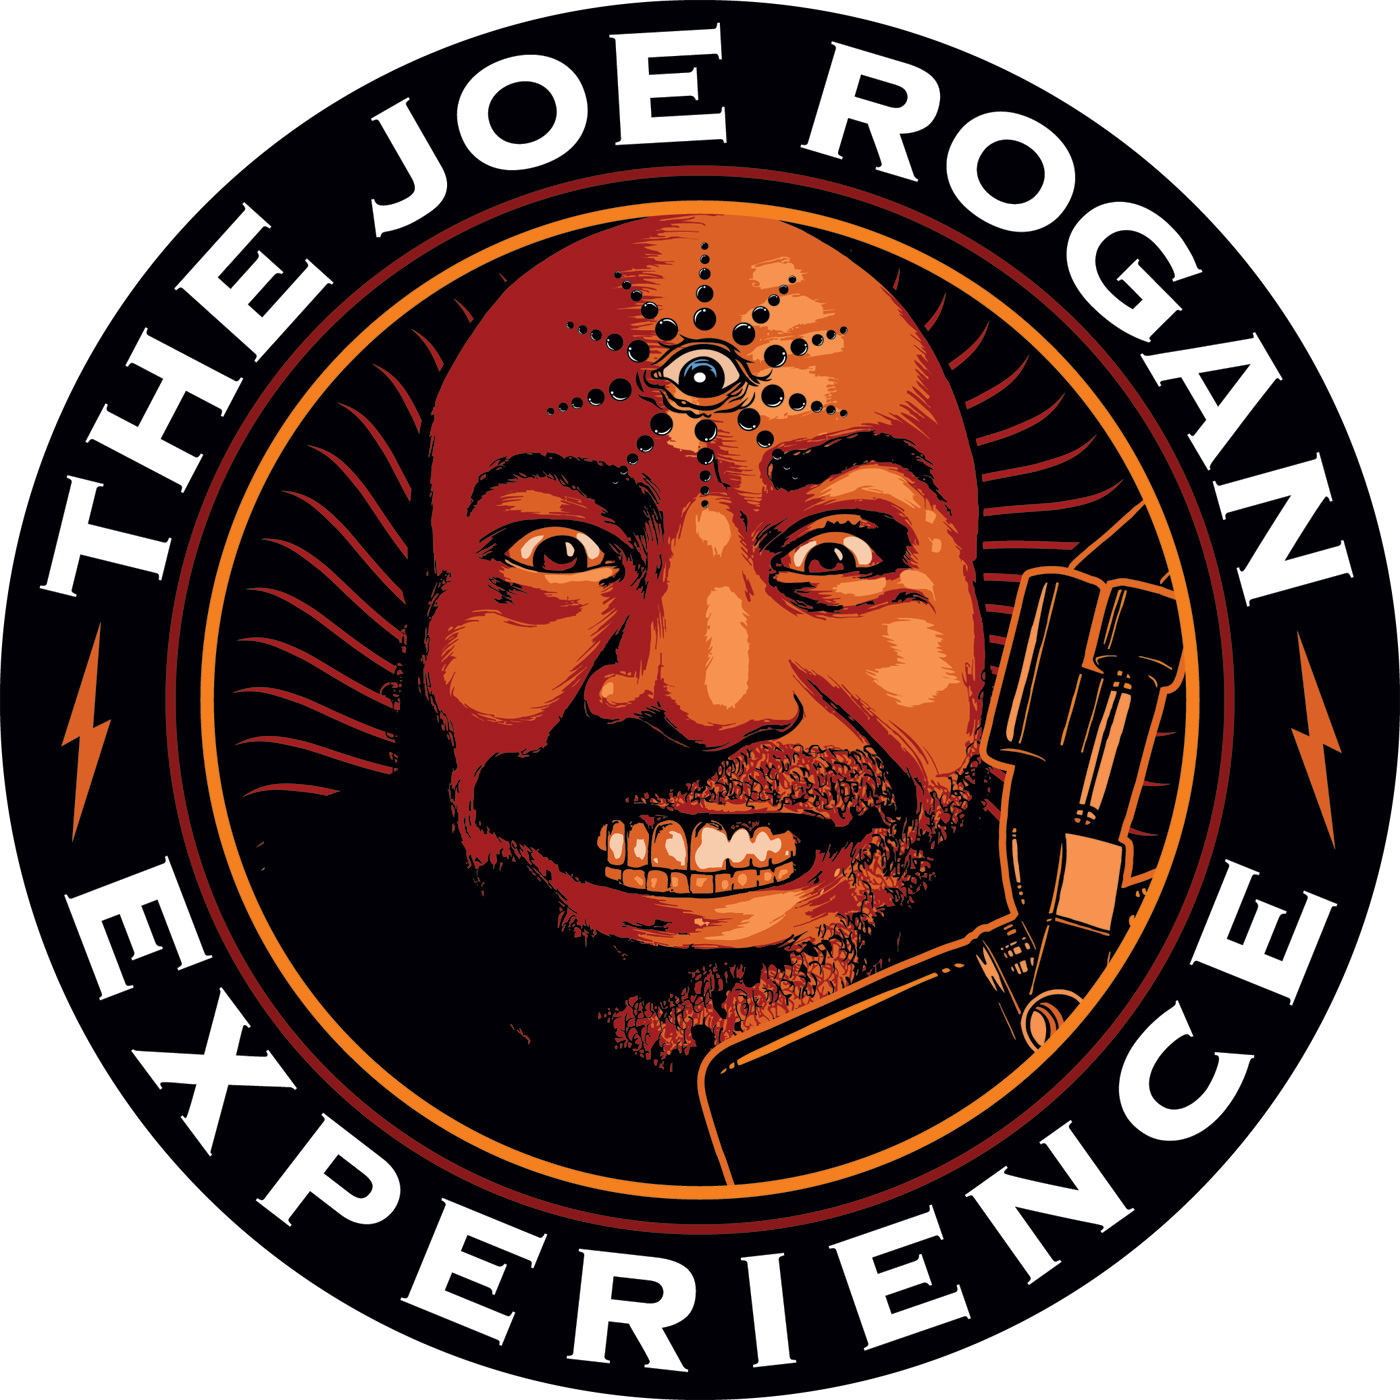 The Joe Rogan Experience PODCAST #142 - Graham Hancock, Duncan Trussell